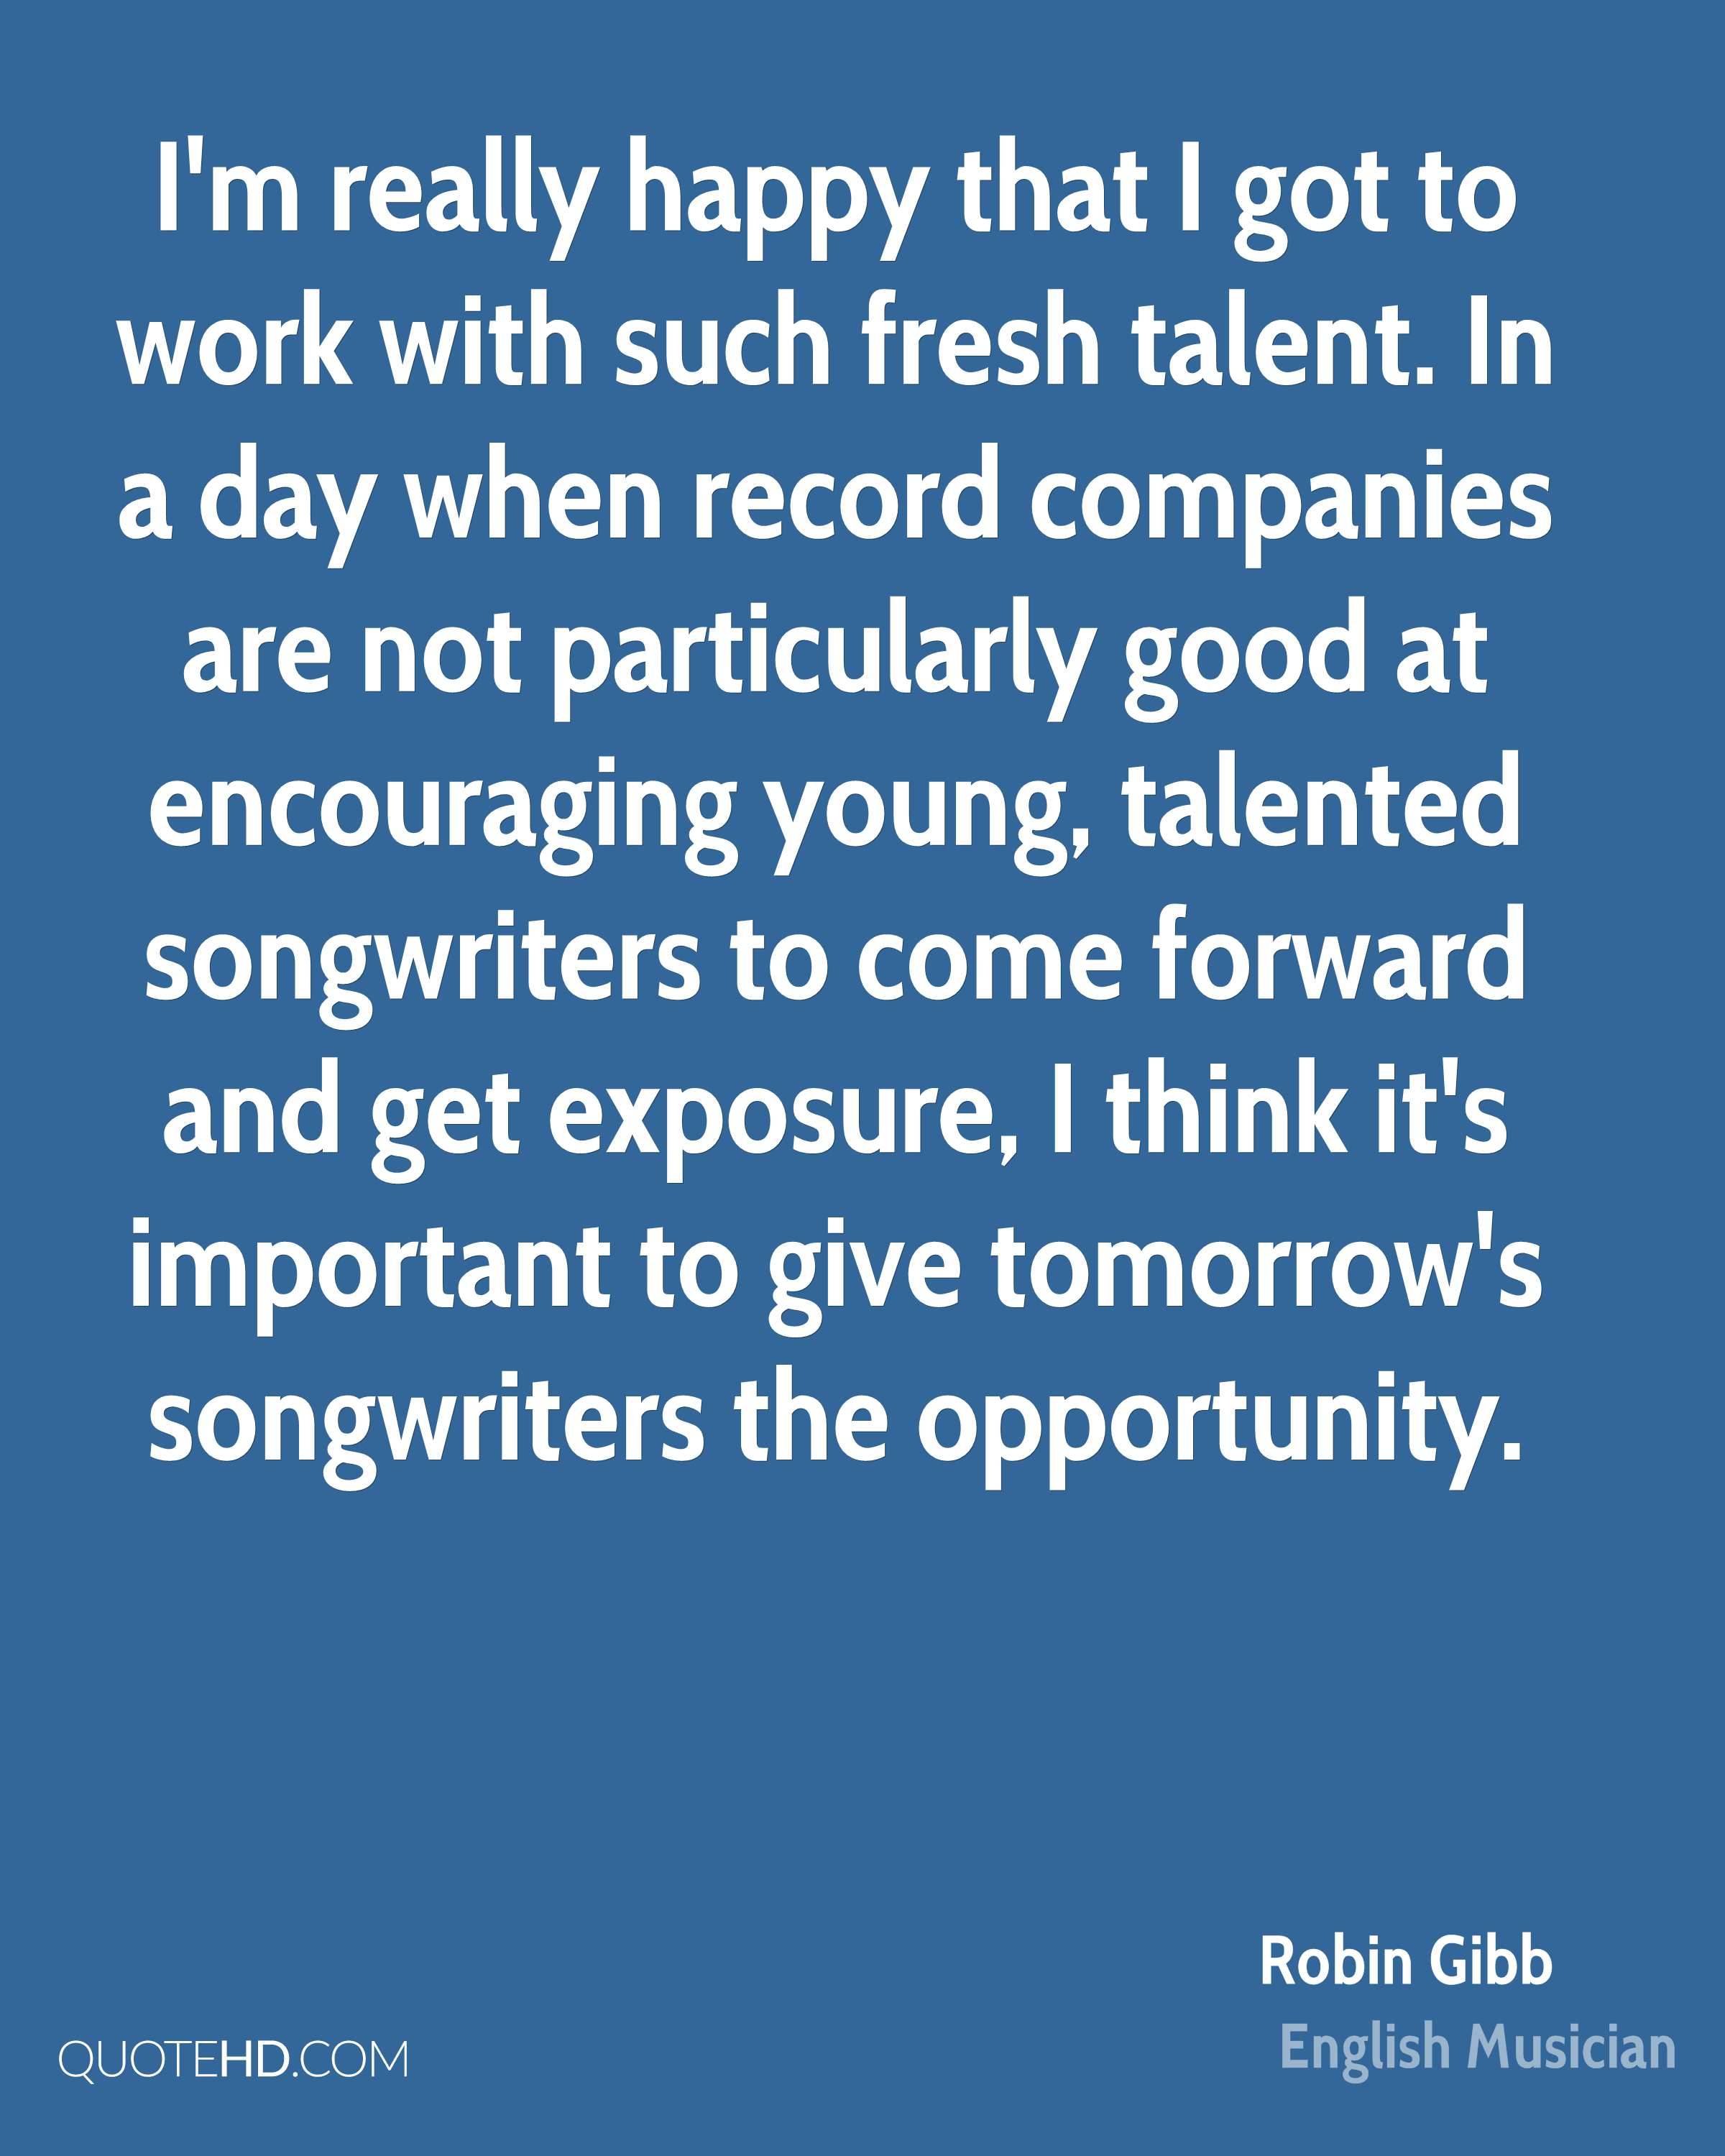 I'm really happy that I got to work with such fresh talent. In a day when record companies are not particularly good at encouraging young, talented songwriters to come forward and get exposure, I think it's important to give tomorrow's songwriters the opportunity.